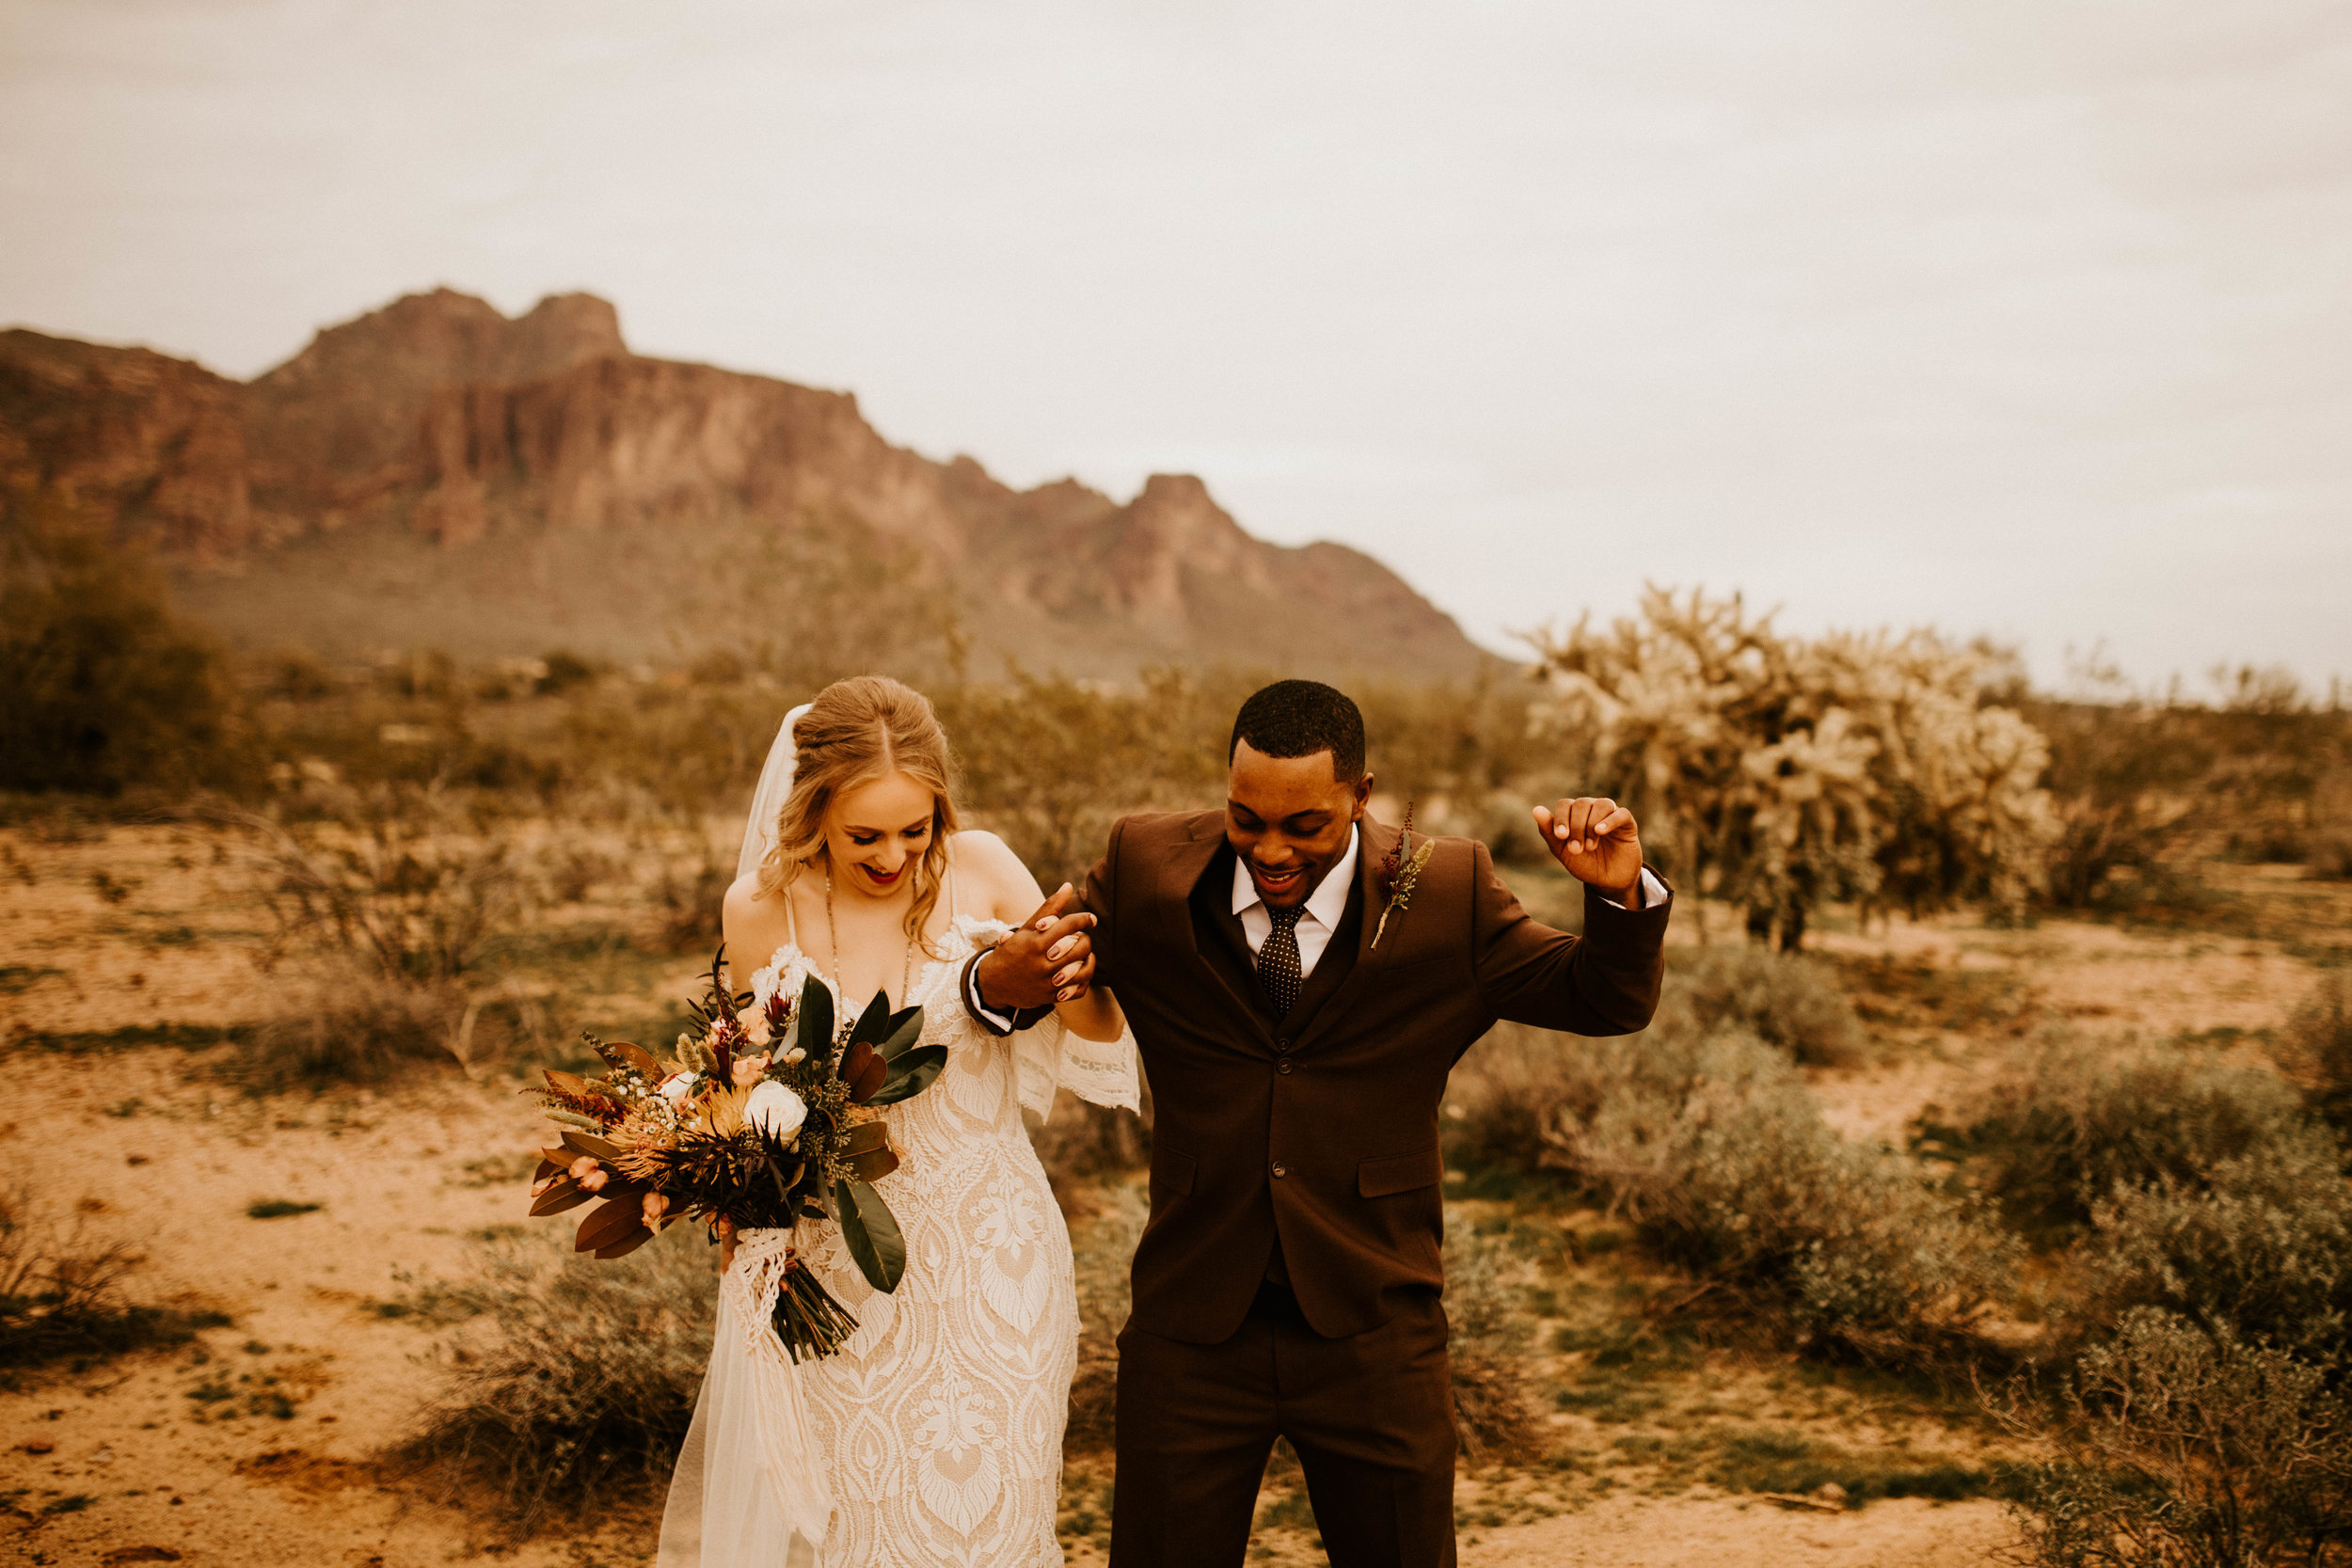 How to Find Your Dream Wedding Photographer